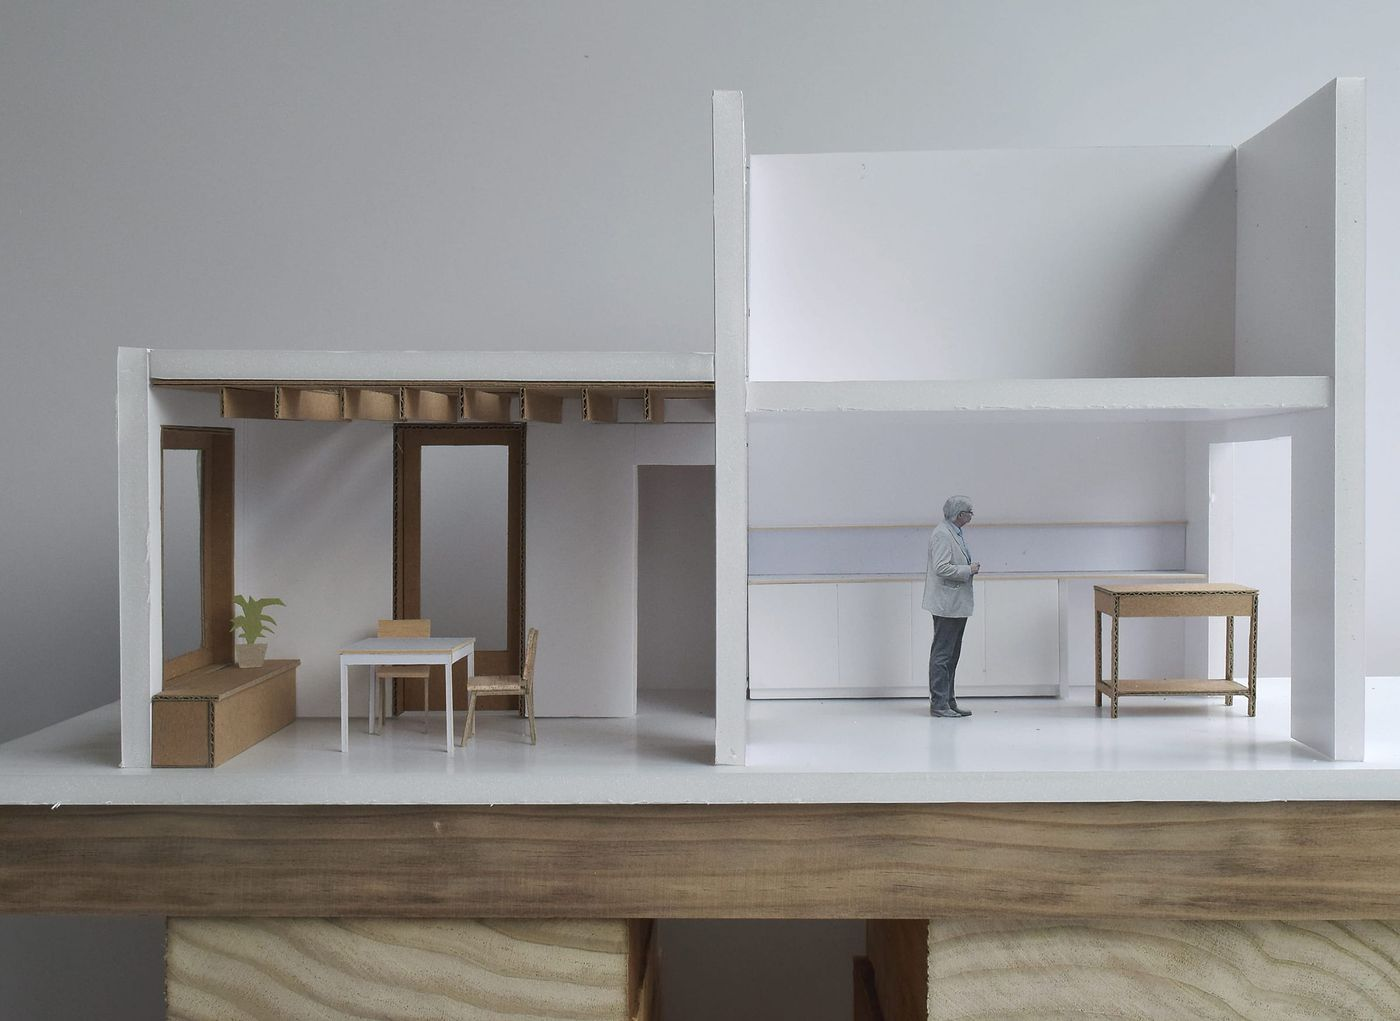 Architectural model photograph of an interior kitchen refurbishment and rear dining room extension in London designed by From Works.